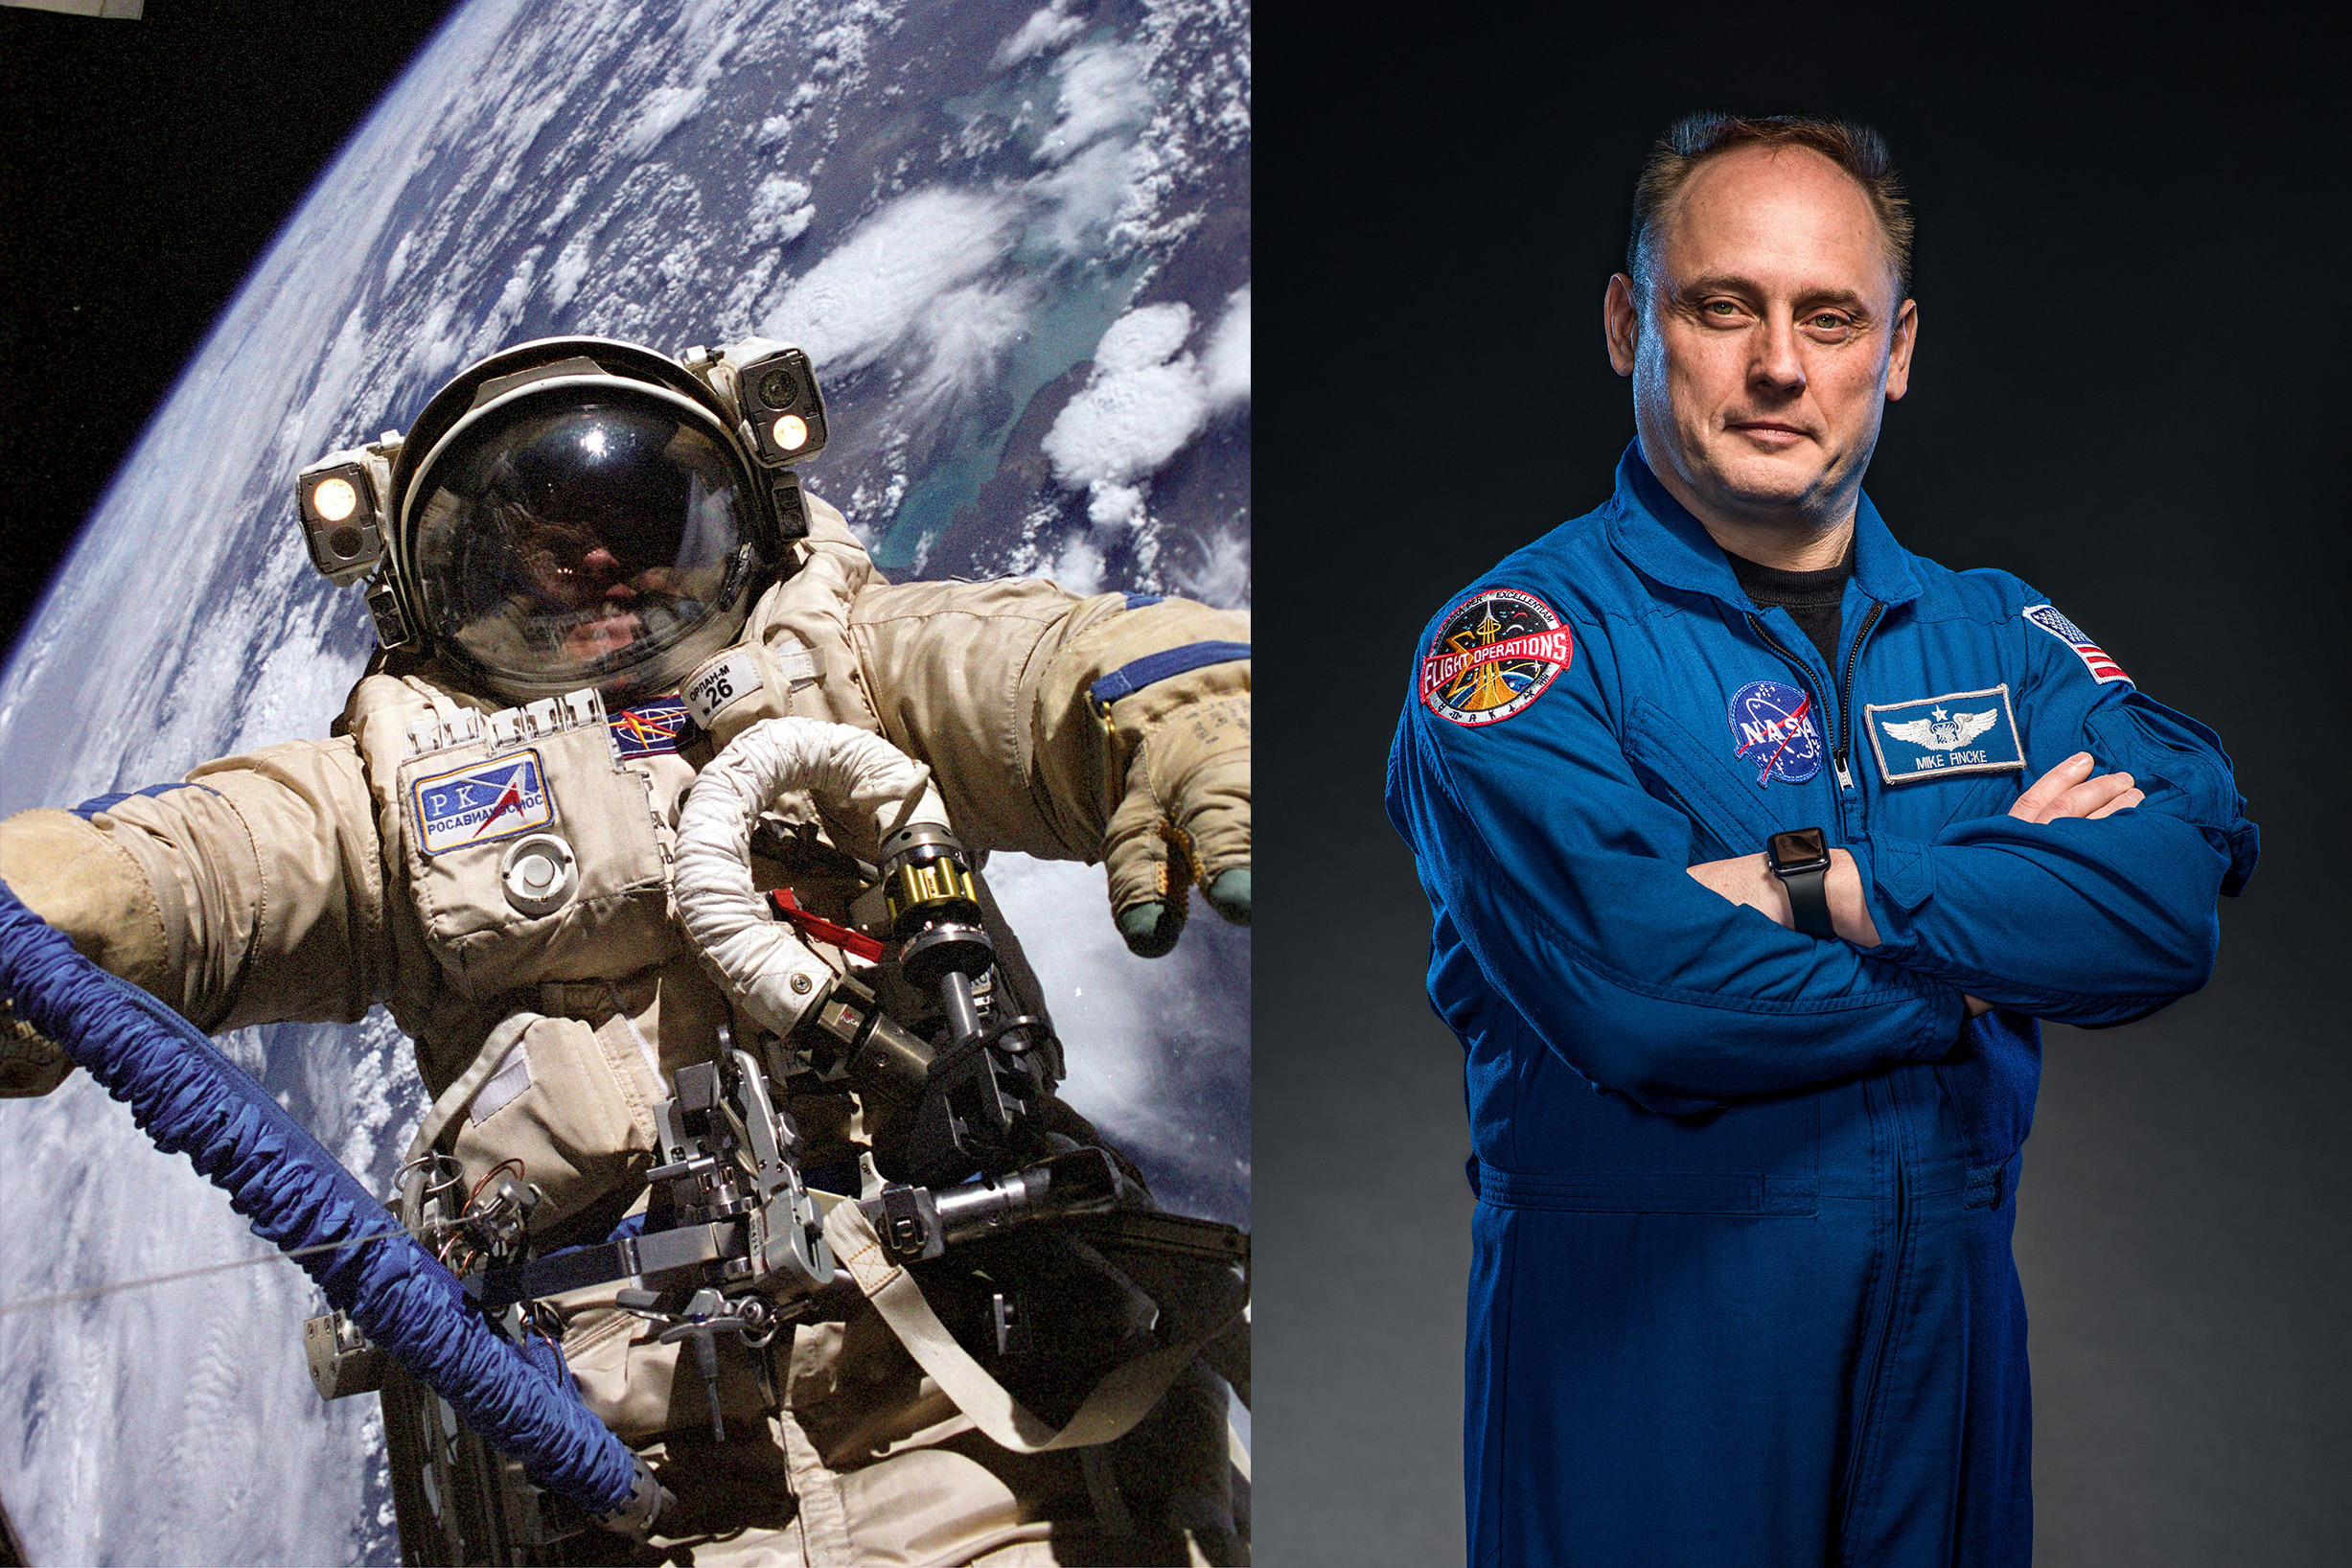 Astronaut Michael Fincke '89 offers students out-of-this-world advice